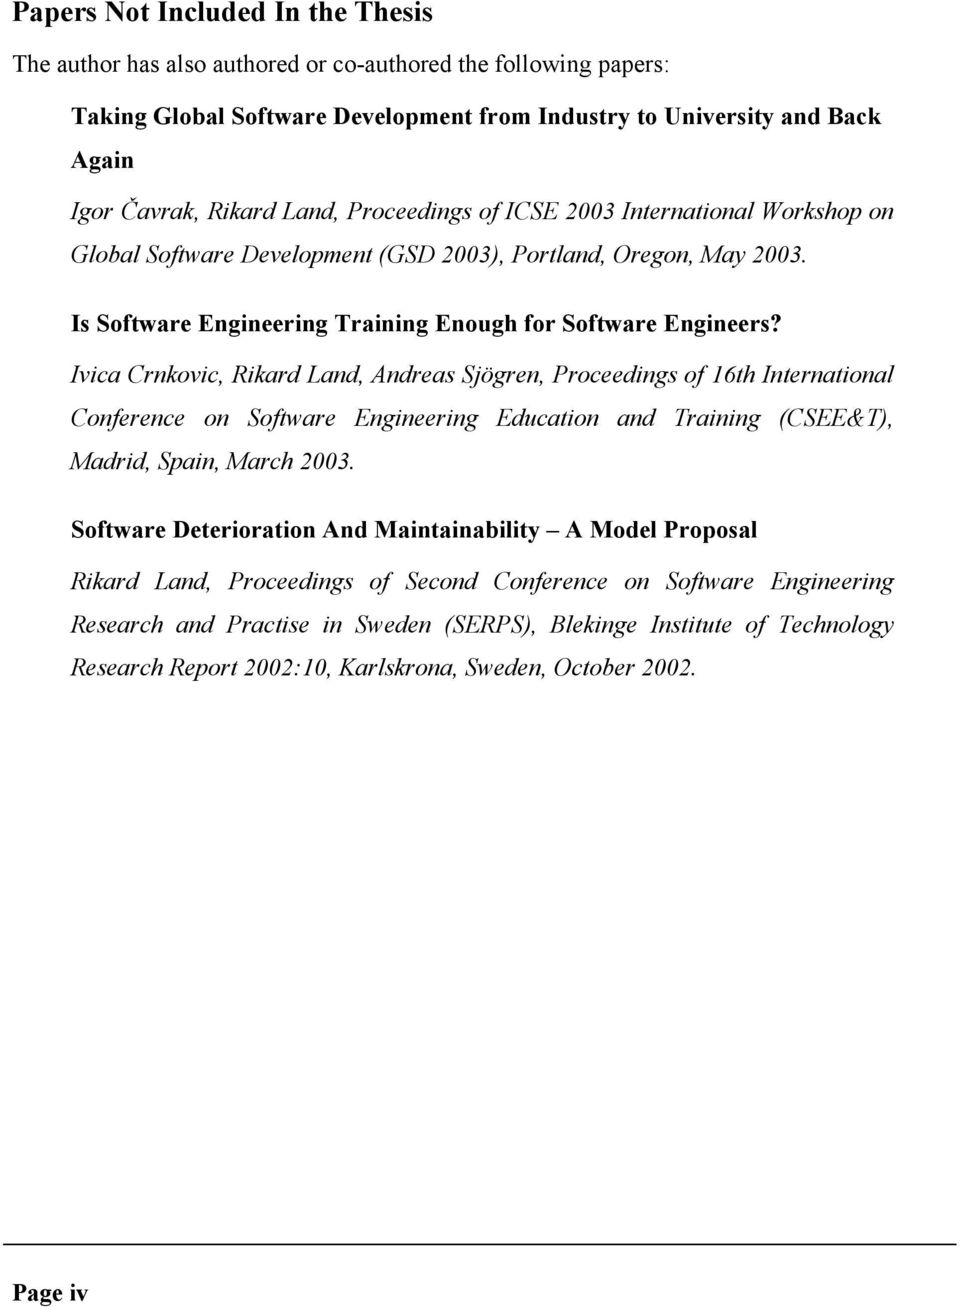 Ivica Crnkovic, Rikard Land, Andreas Sjögren, Proceedings of 16th International Conference on Software Engineering Education and Training (CSEE&T), Madrid, Spain, March 2003.